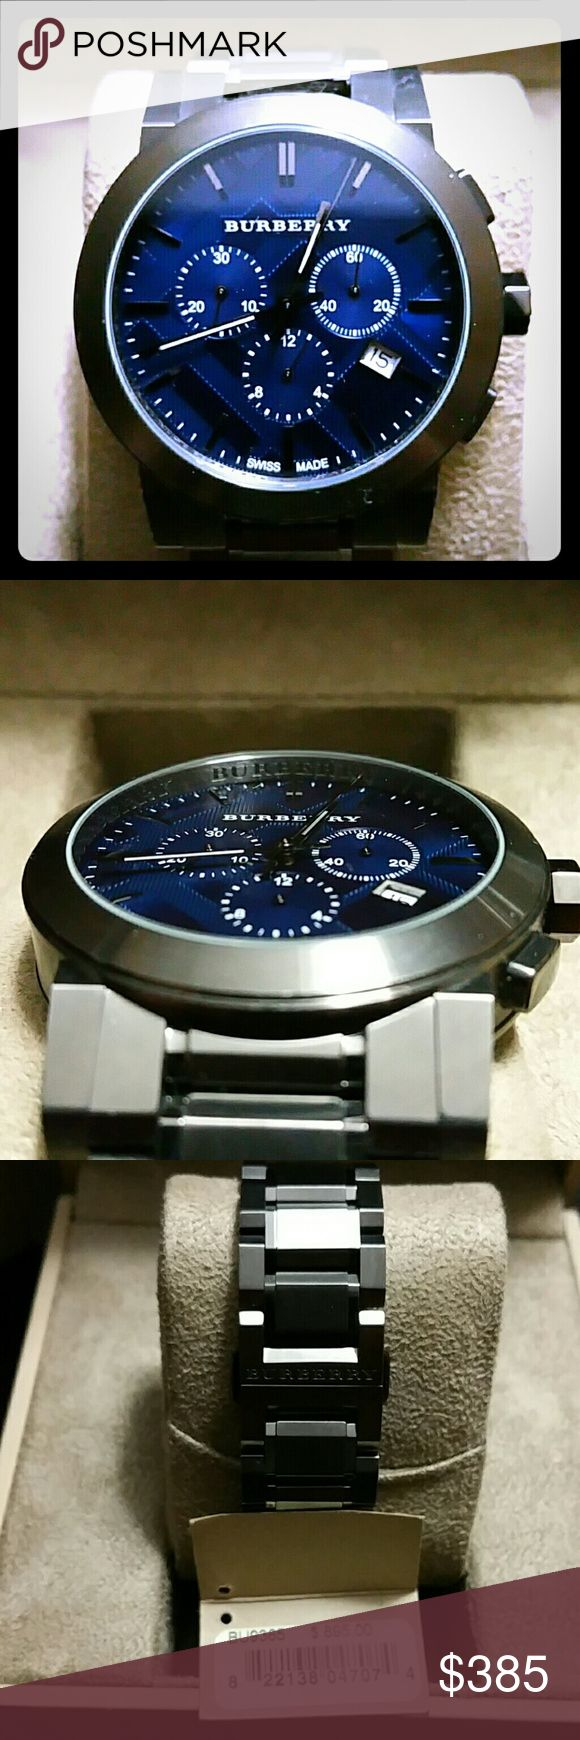 BURBERRY MENS WATCH  BU9365 GUNMETAL GREY WITH A METALIC BLUE FACE 42mm CHRONOGRAPH CASE A WORN A HAND FULL OF TIME LIKE NEW CONDITION VERY UNOTICABLE SCARTCHES WITH EXTRA LINKS THAT ARE ATTACHED TO THE BRACELET. COMES IN ORIGINAL BOX WITH MANUAL AS SEEN IN PICTURES. PRICE IS NEGOTIABLE Burberry Accessories Watches